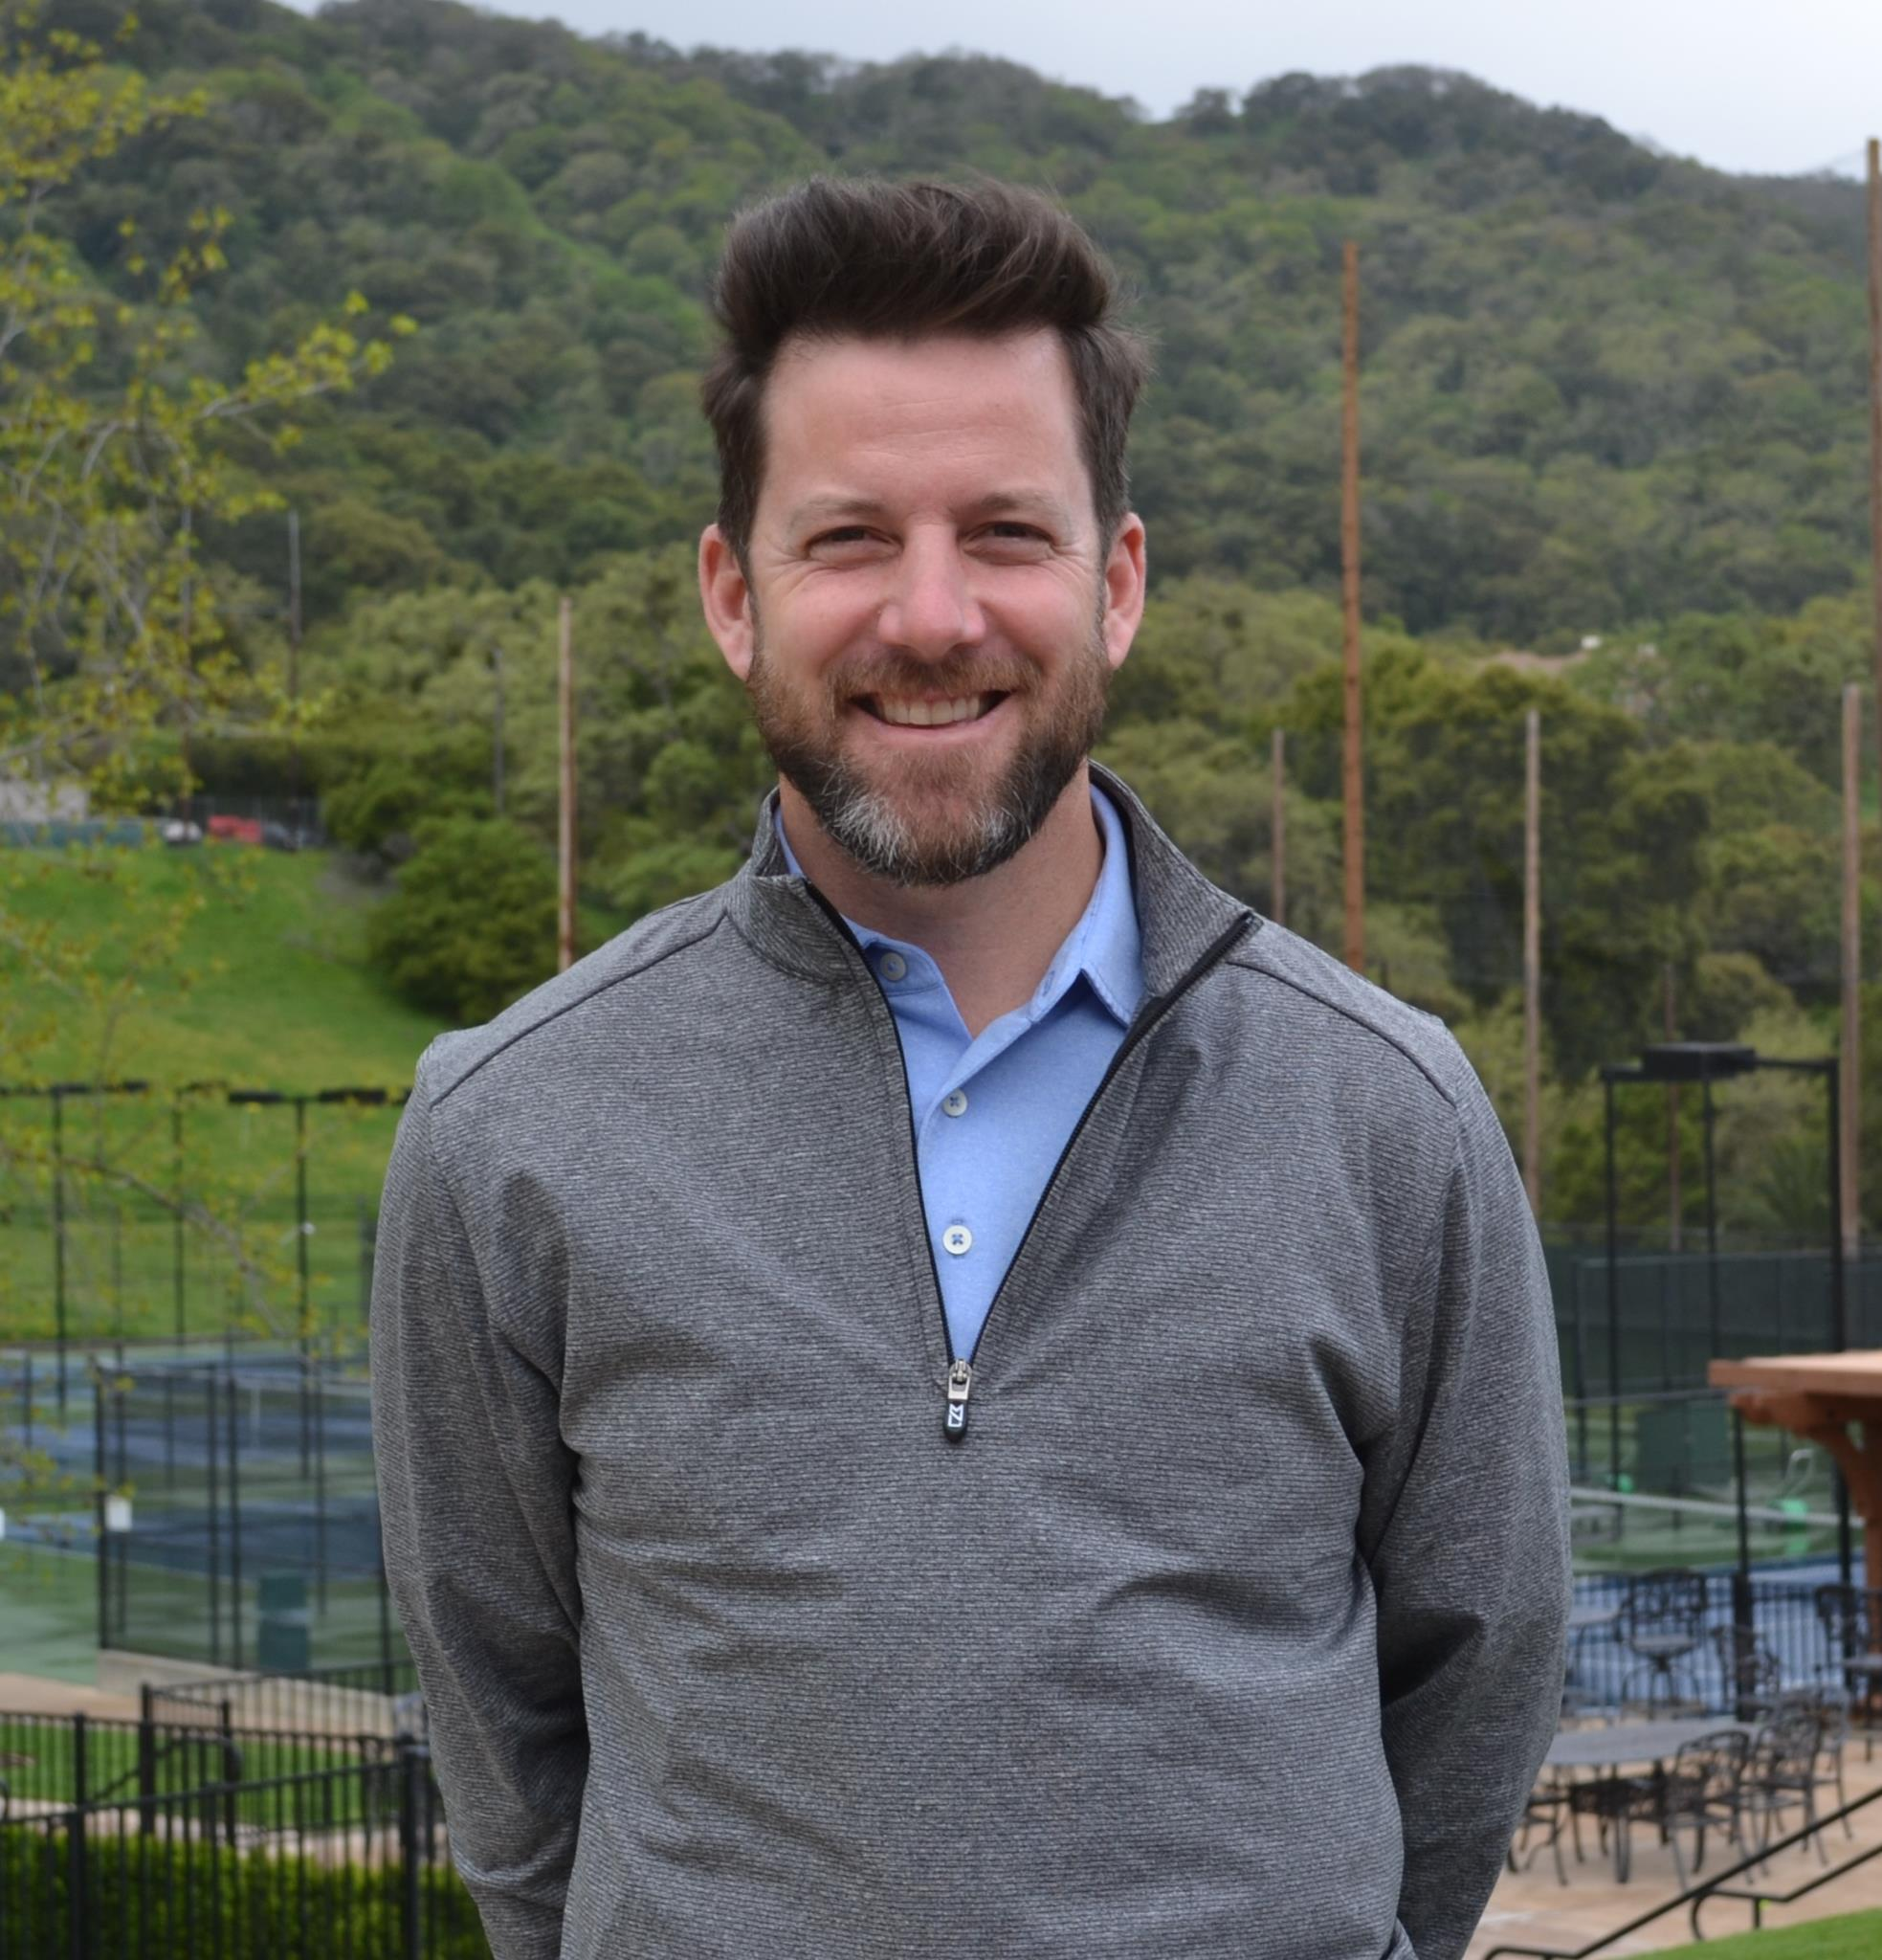 photo of Kevin Wentworth